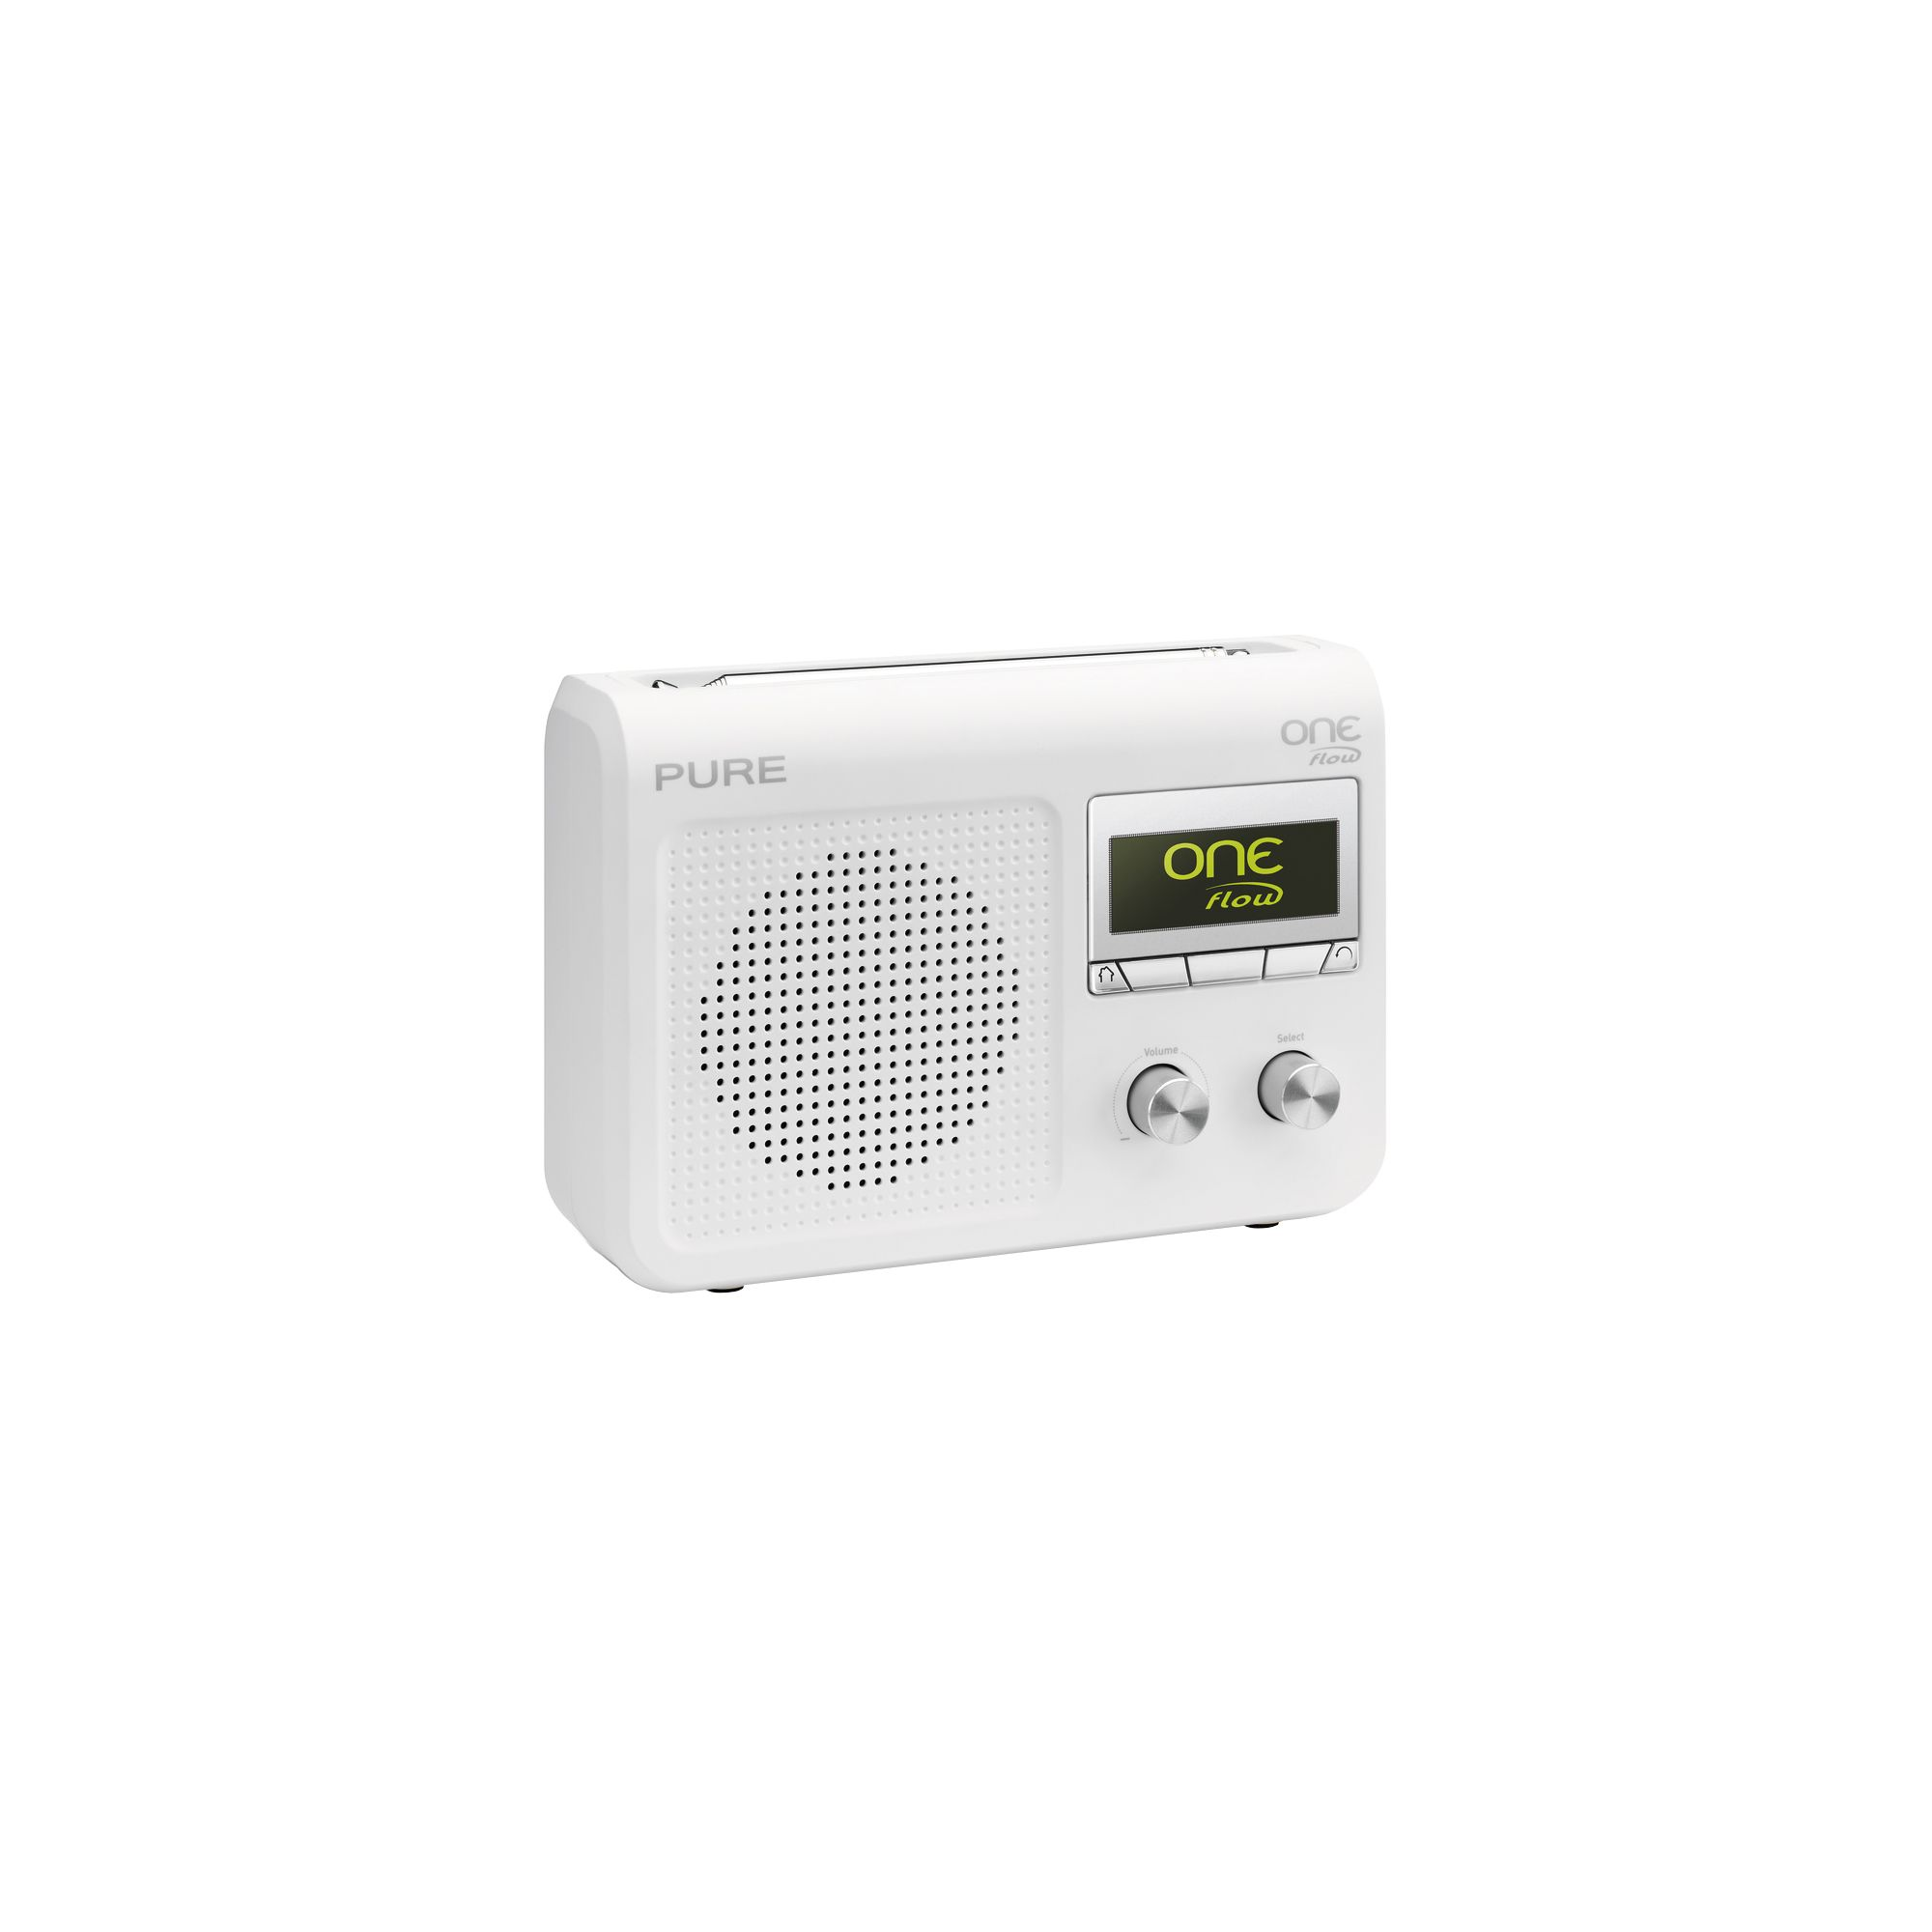 pure one flow dab fm internet radio white best deals on dab radio. Black Bedroom Furniture Sets. Home Design Ideas